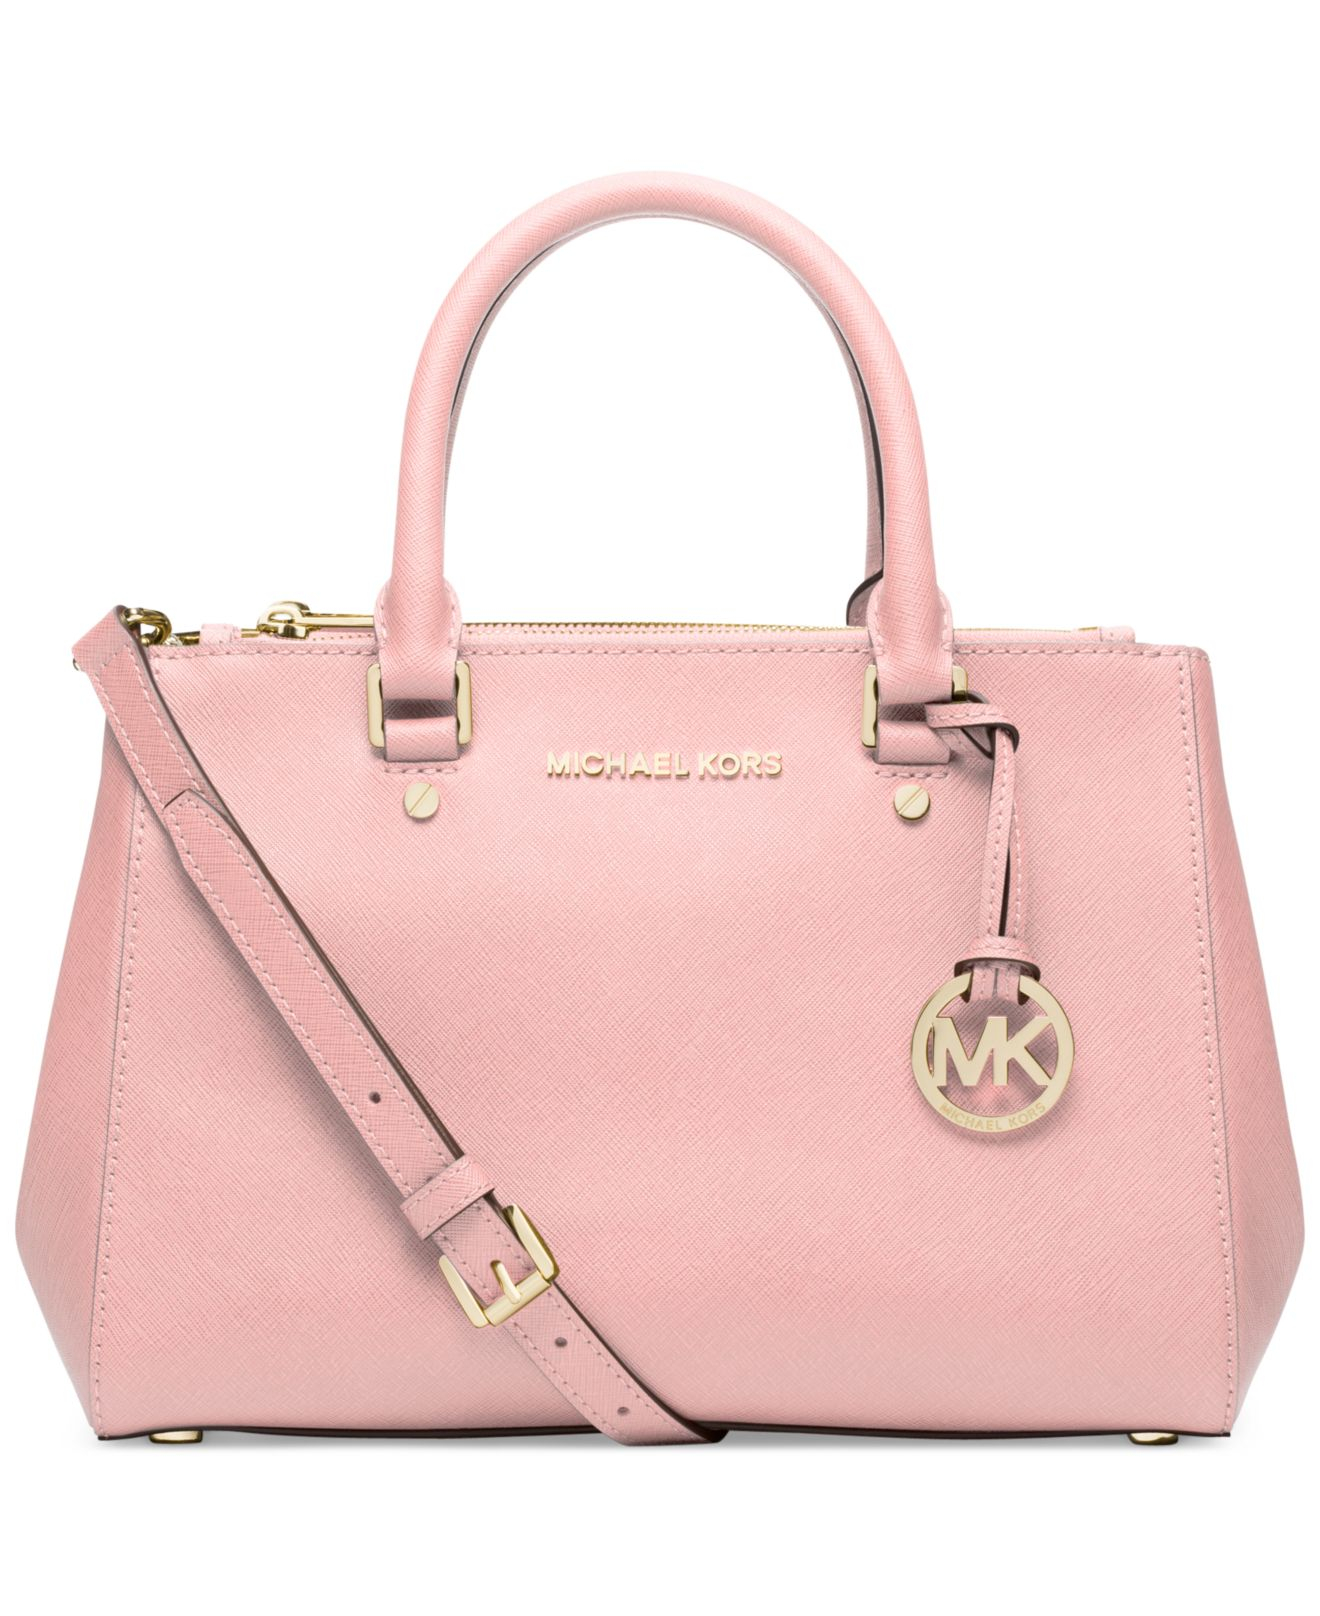 michael kors michael sutton small satchel in pink lyst. Black Bedroom Furniture Sets. Home Design Ideas